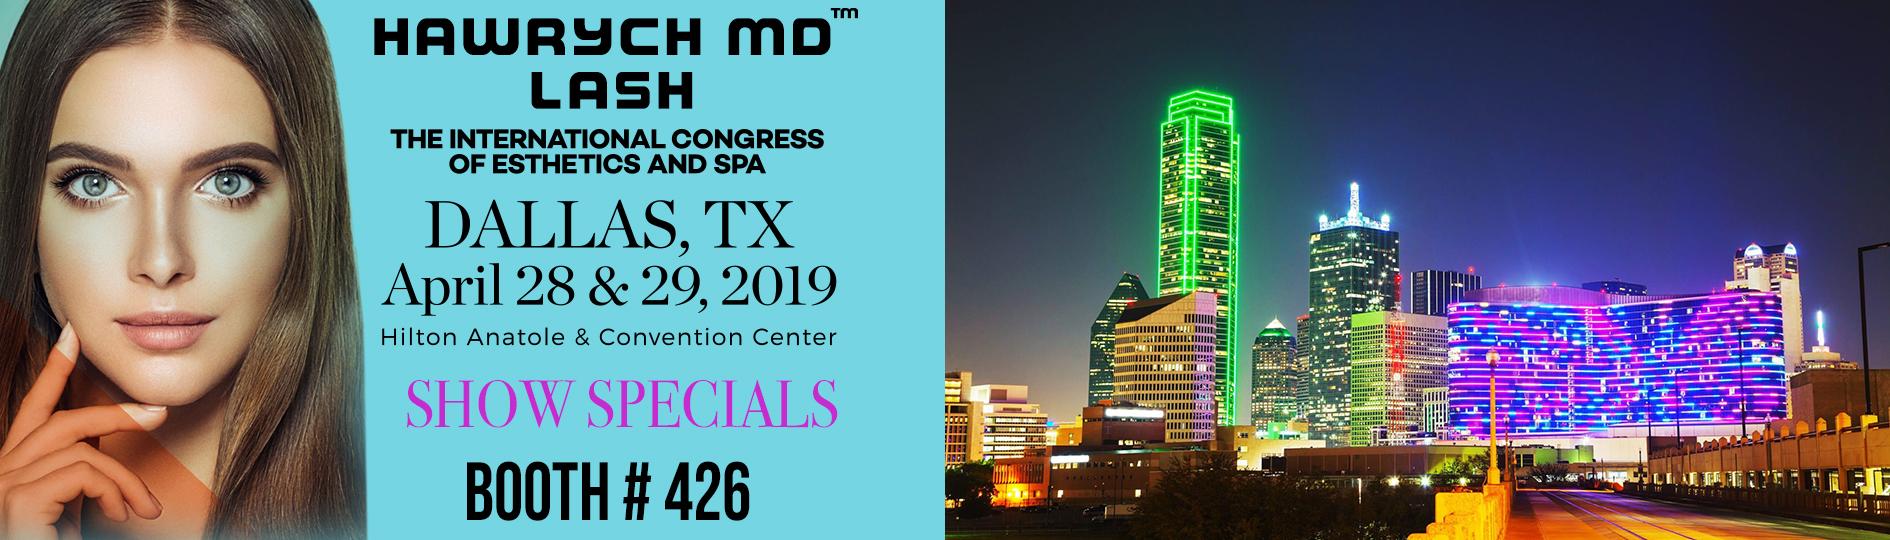 iecs beauty show dallas 2019